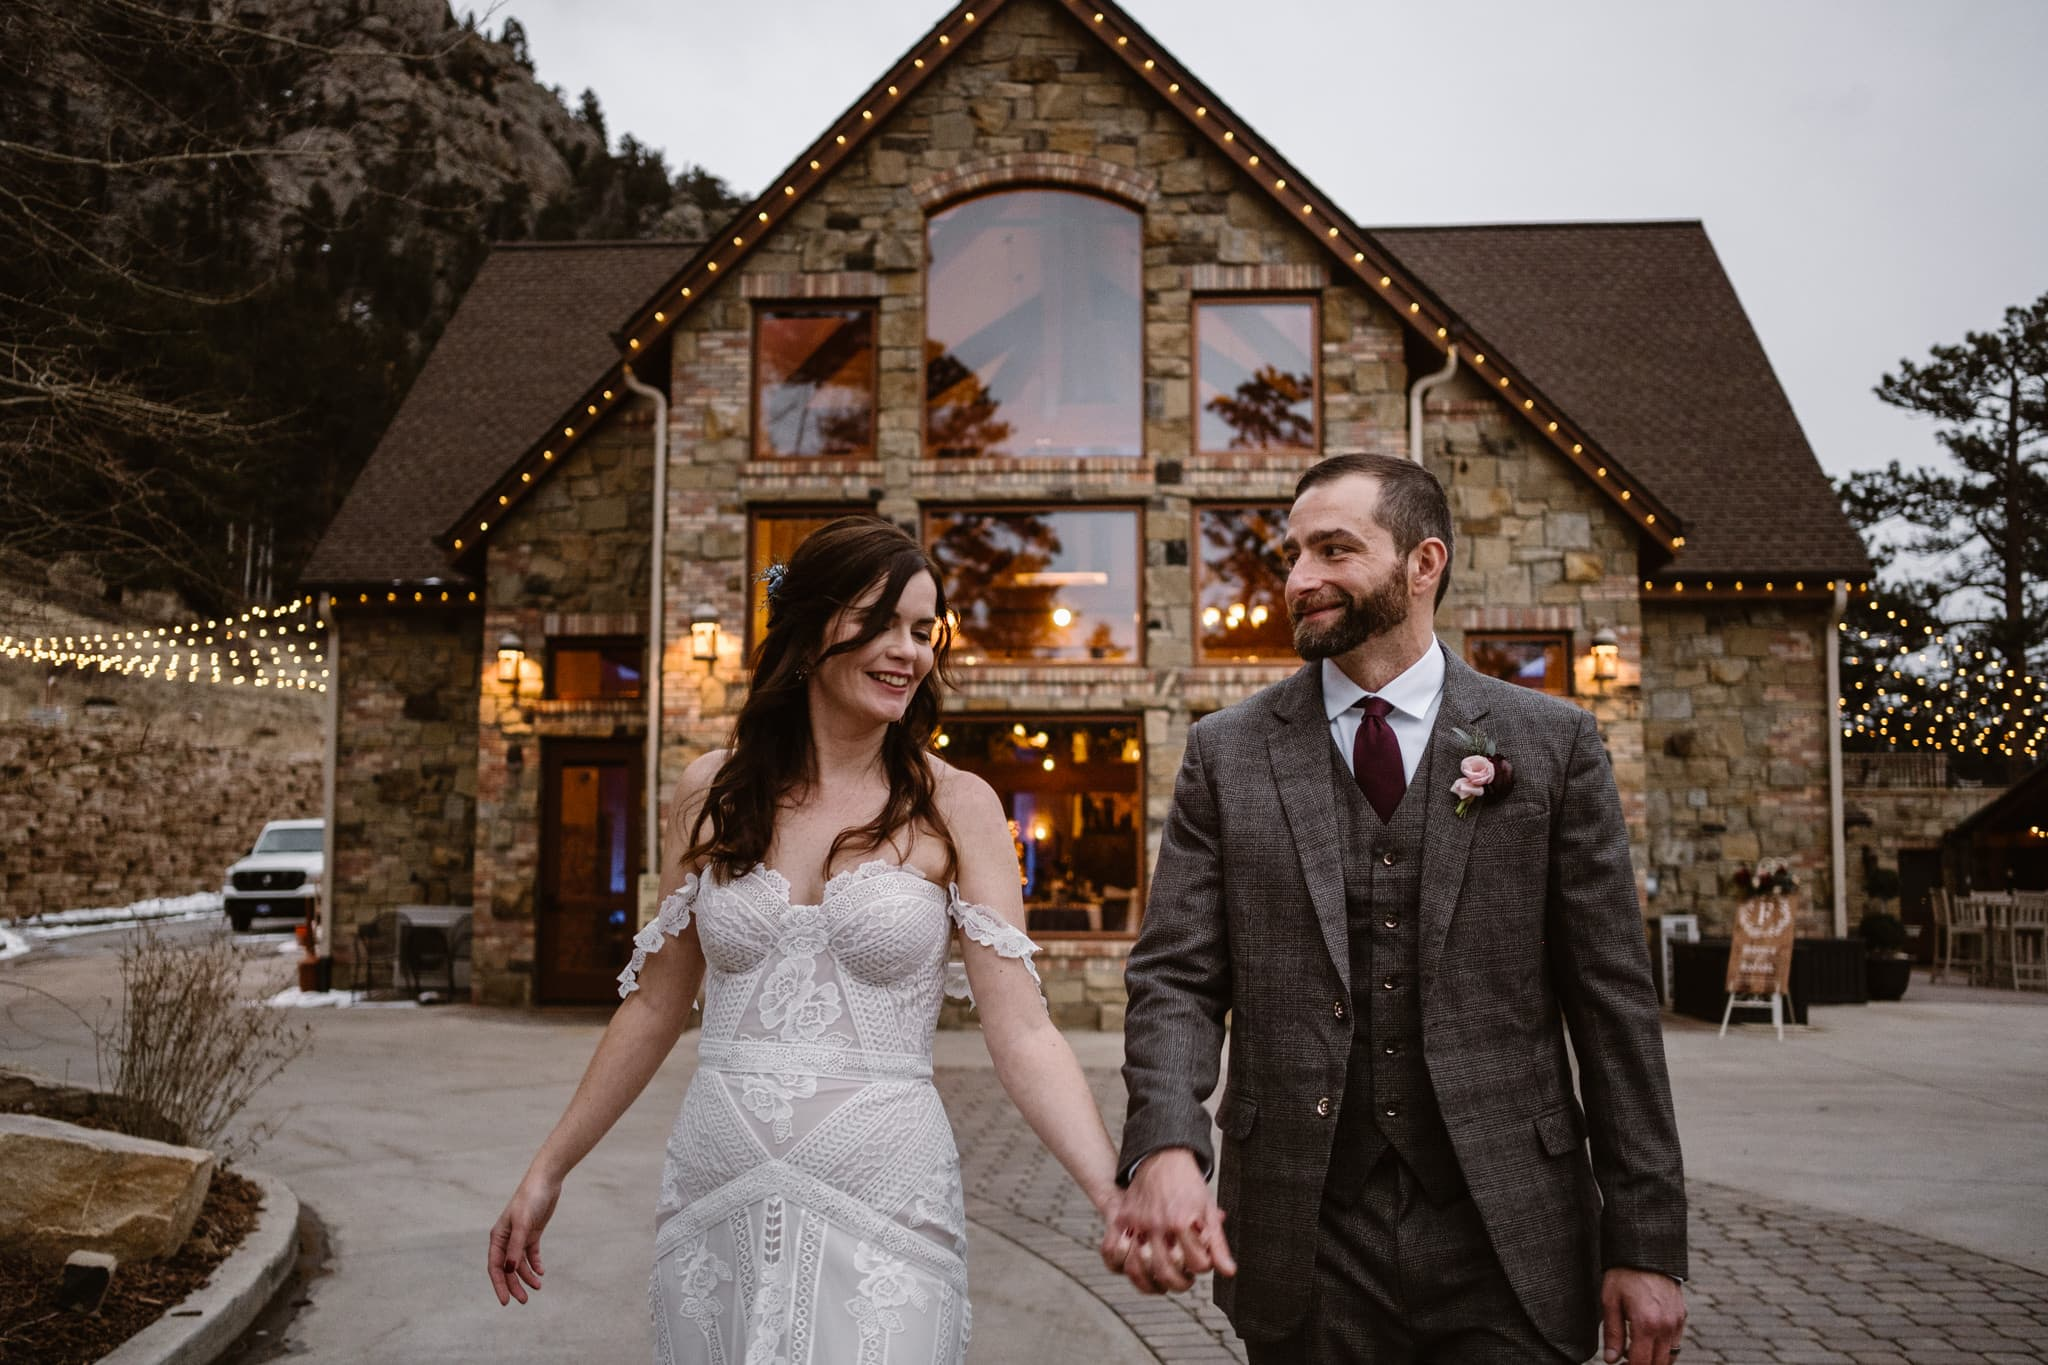 Della Terra Mountain Chateau winter wedding, Estes Park wedding photographer, bride and groom walking in front of wedding venue at dusk